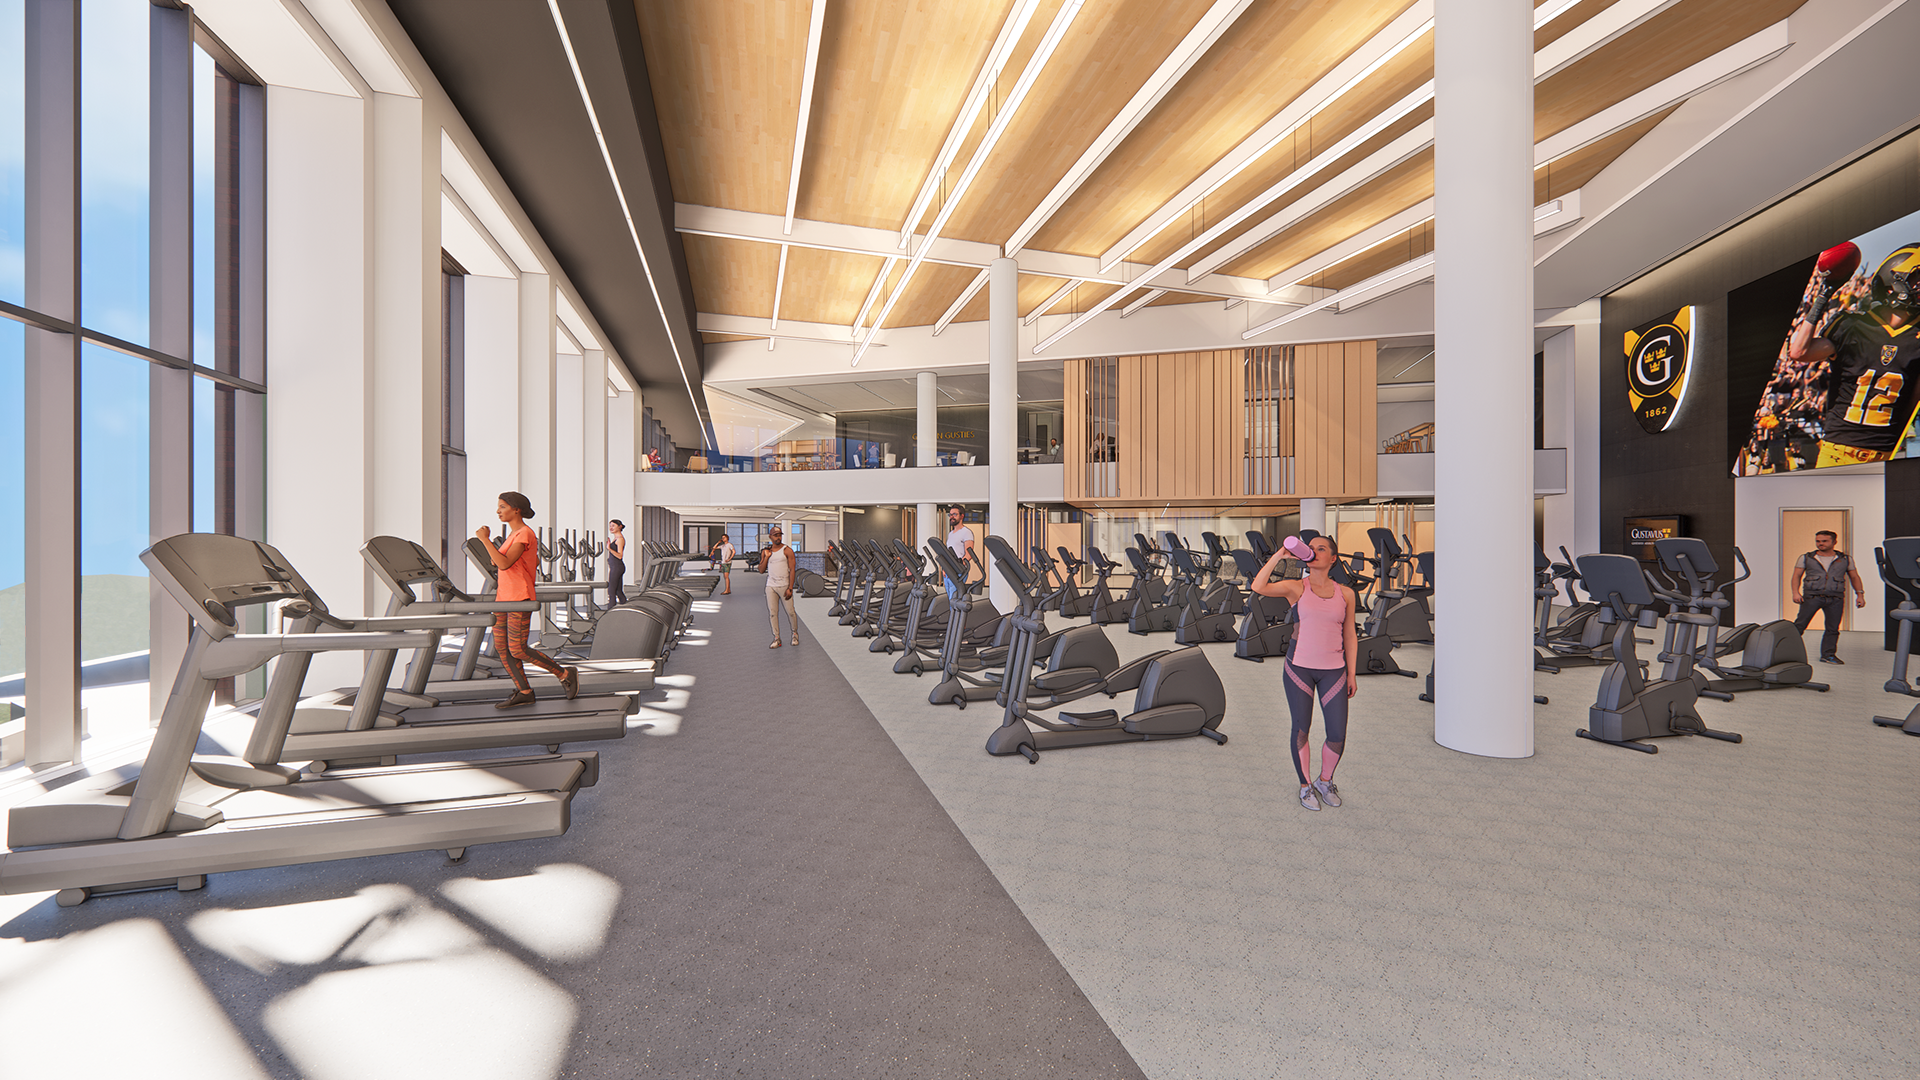 Rendering of the new cardio and field house with expansive windows and wood ceiling.